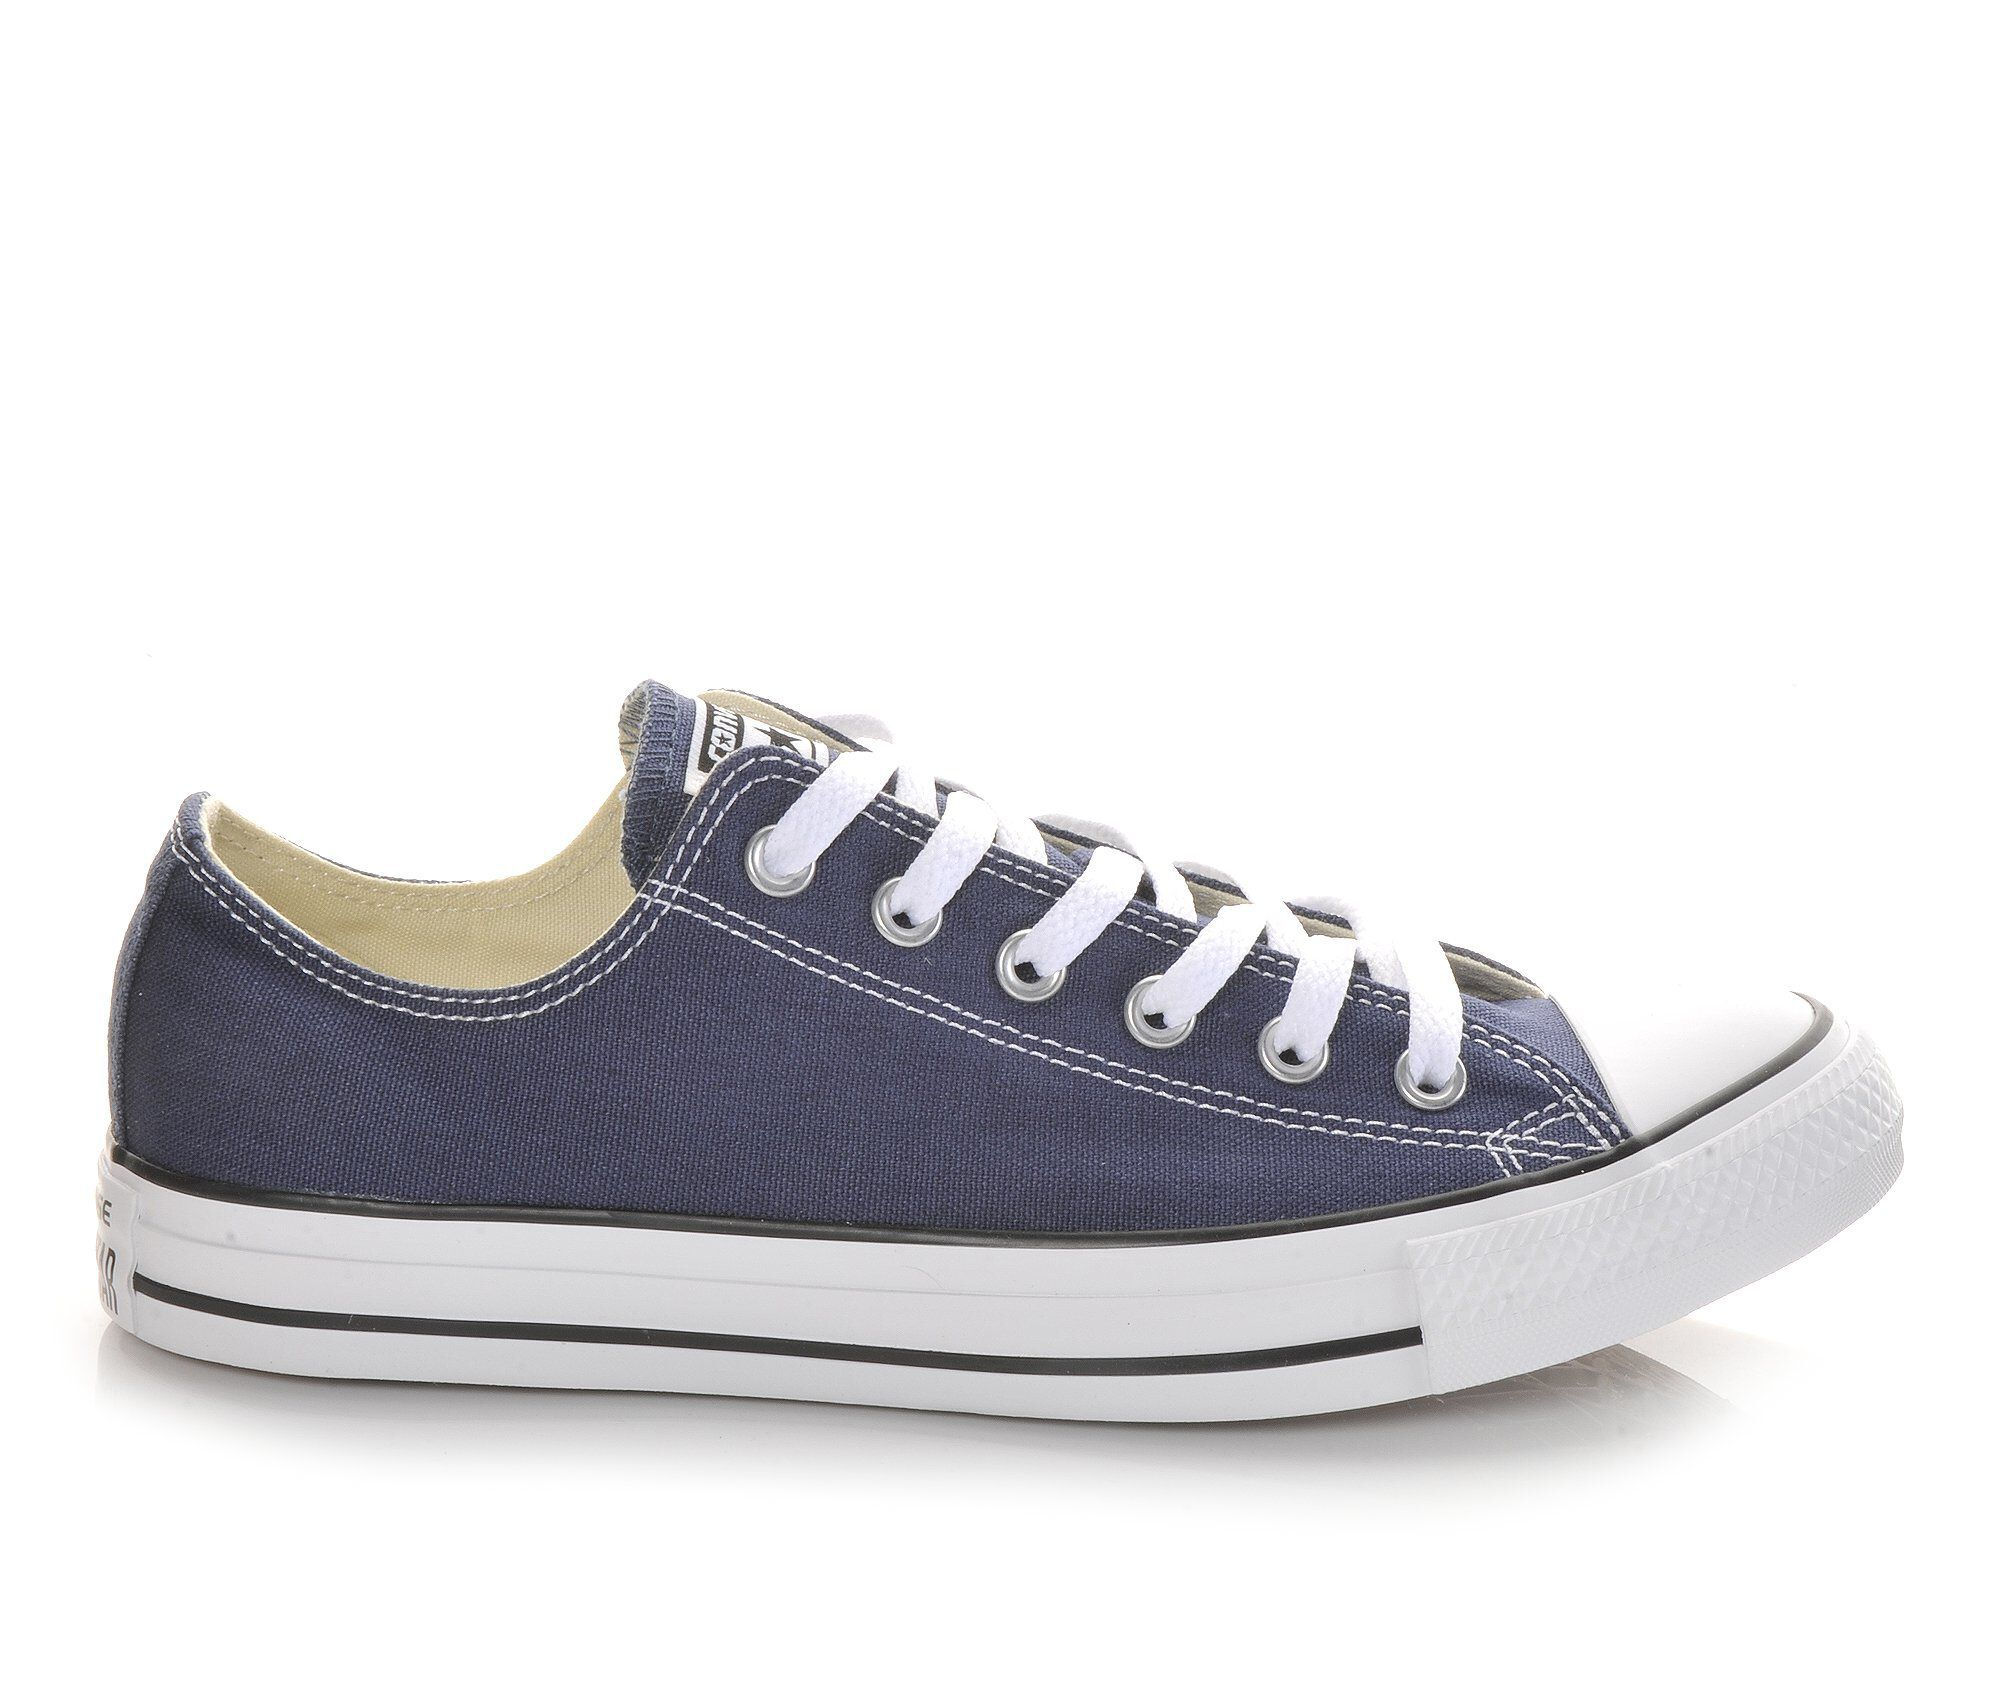 Adults' Converse Chuck Taylor All Star Canvas Ox Core Sneakers Navy